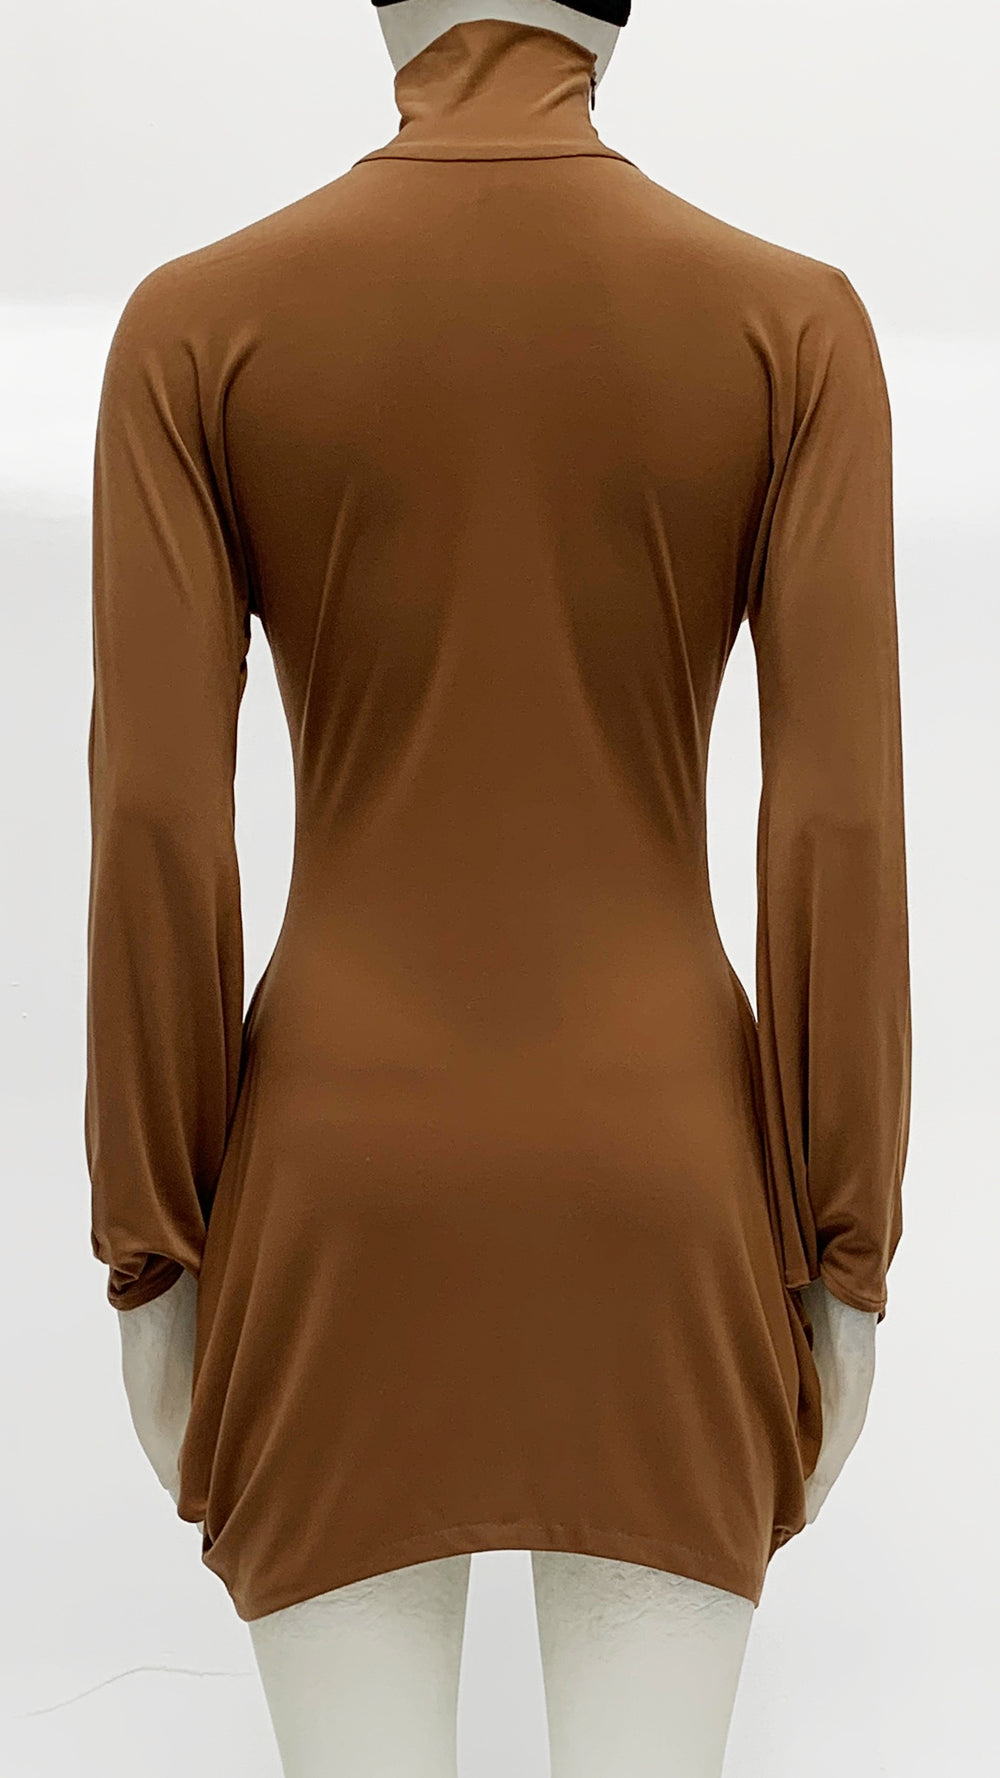 TURTLENECK MODERN SCULPTURE DRESS - 2